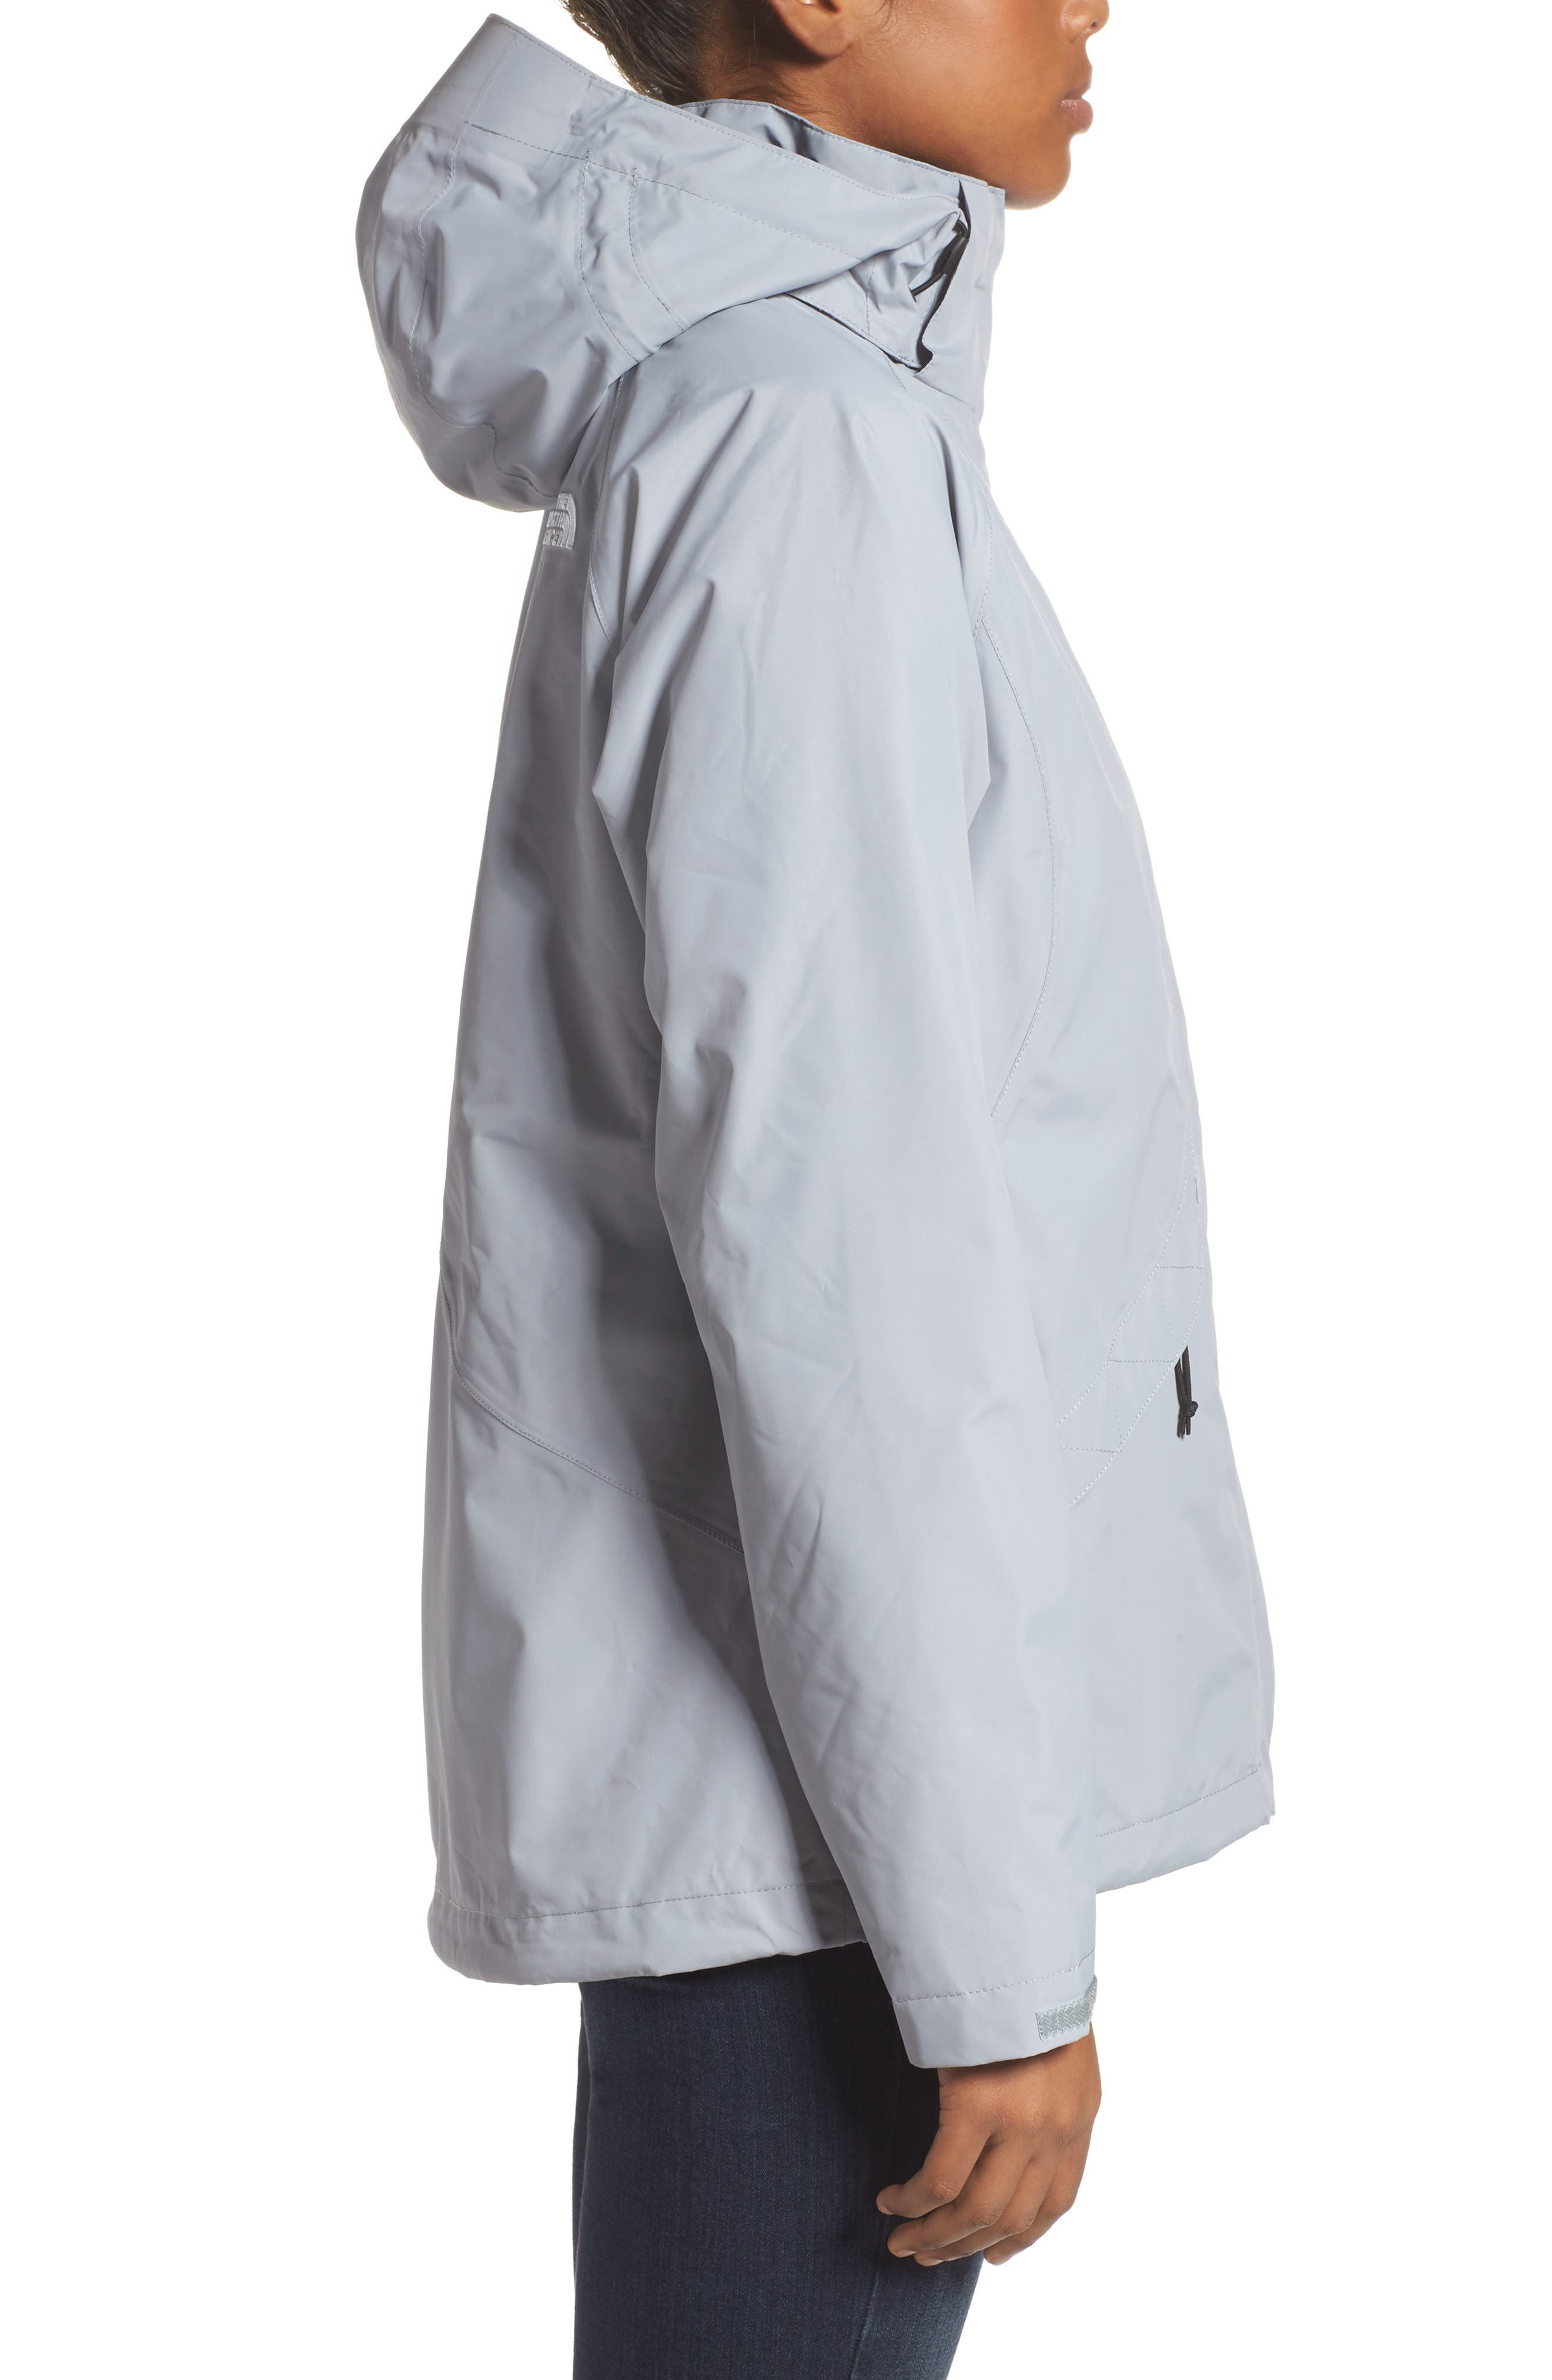 Boundary Triclimate<sup>®</sup> 3-in-1 Jacket,                             Alternate thumbnail 3, color,                             030